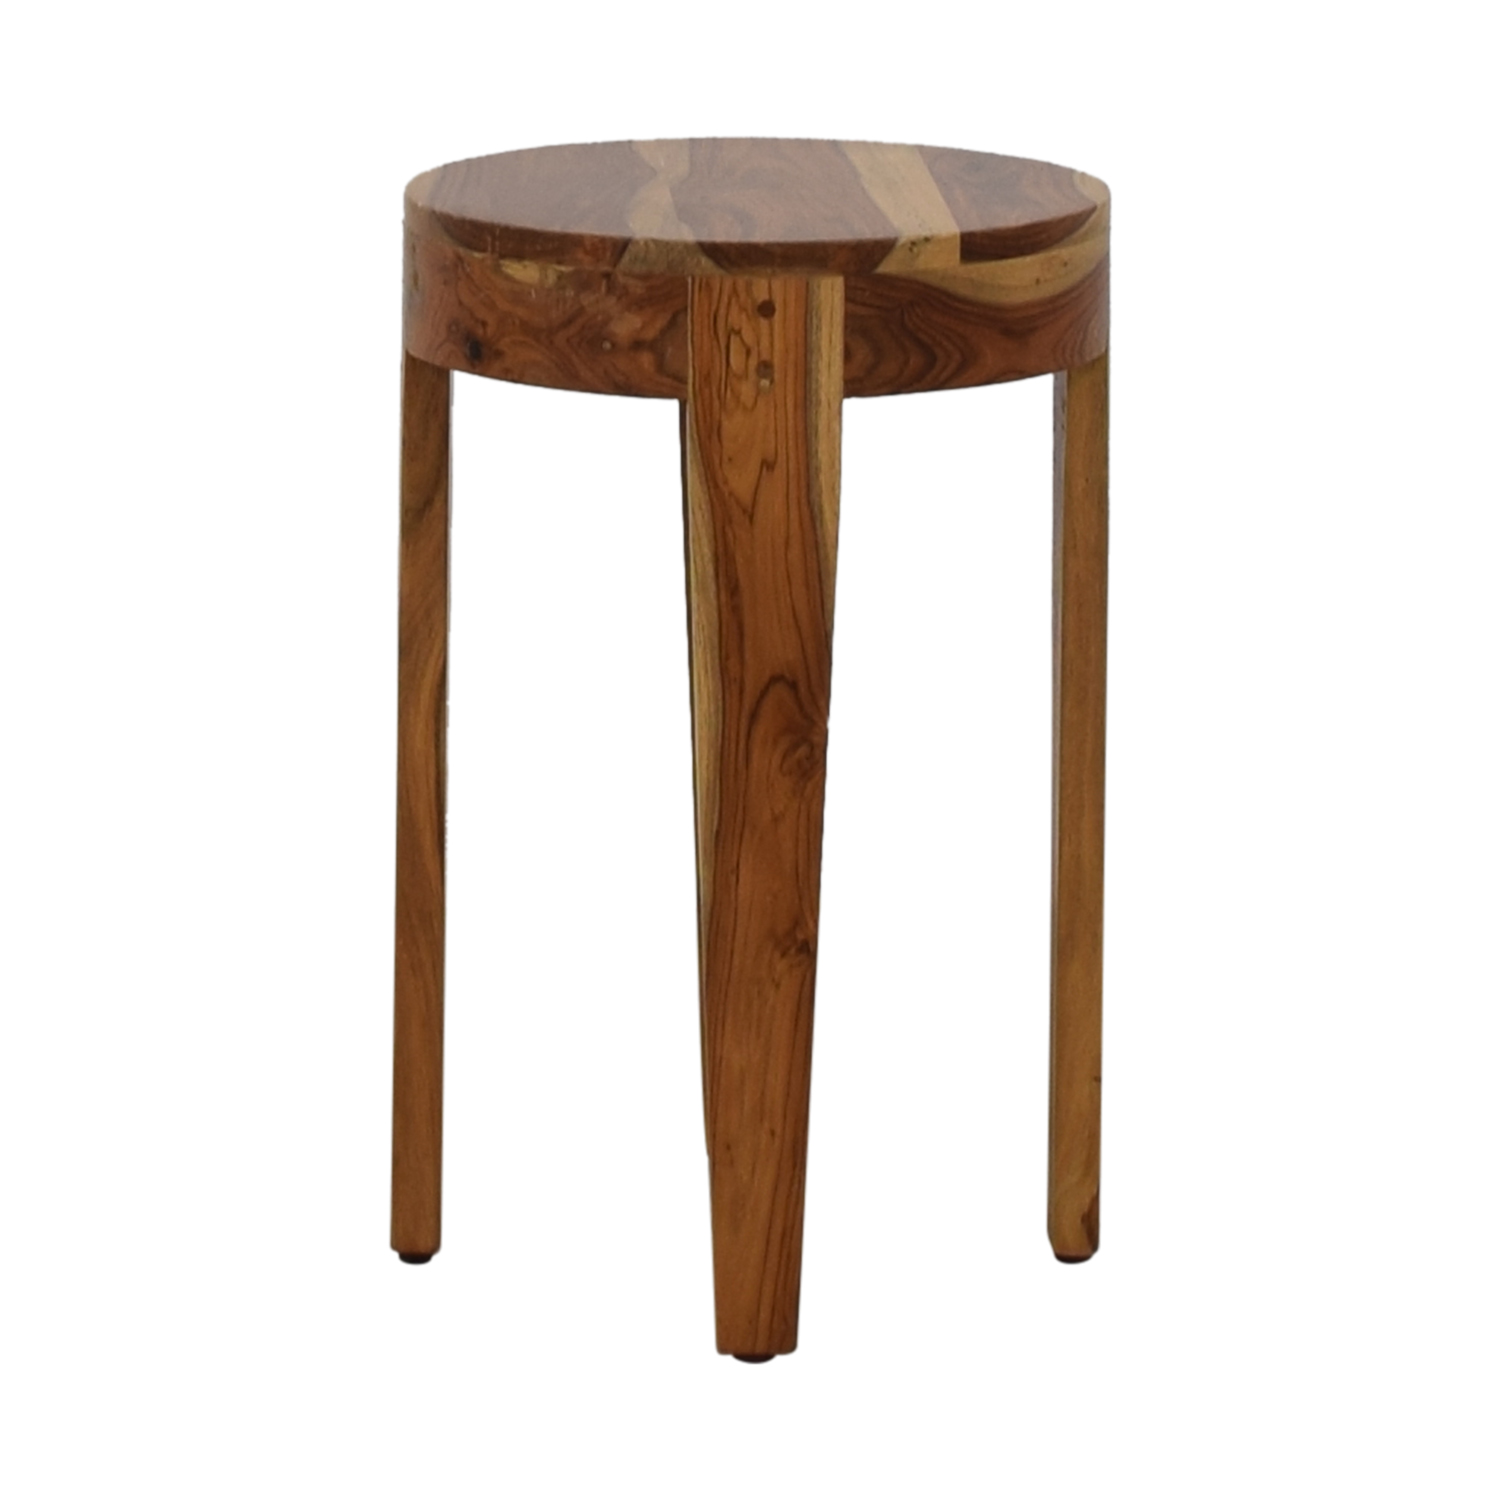 off target small round accent table tables second hand dining light fixture black brown nest fold away desk wicker side indoor kitchen chairs sears coffee metal glass bedside